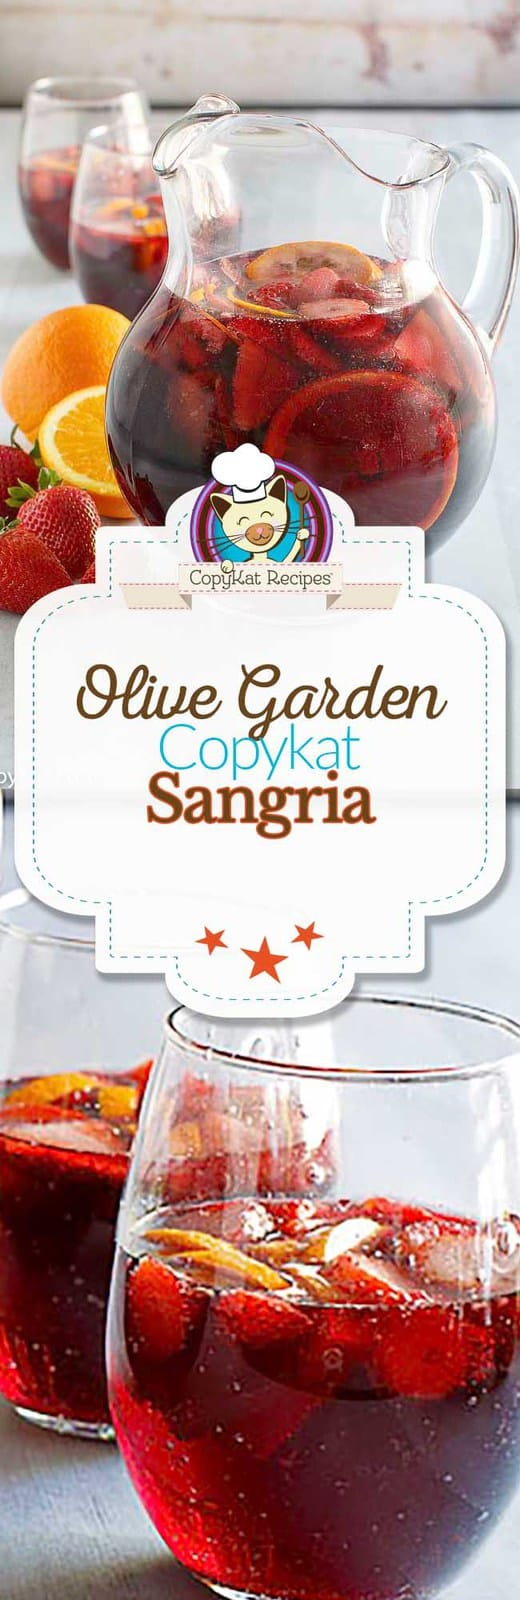 You can recreate the original Olive Garden Sangria recipe at home with this easy copycat recipe.   #copycat #copycatrecipe #sangria